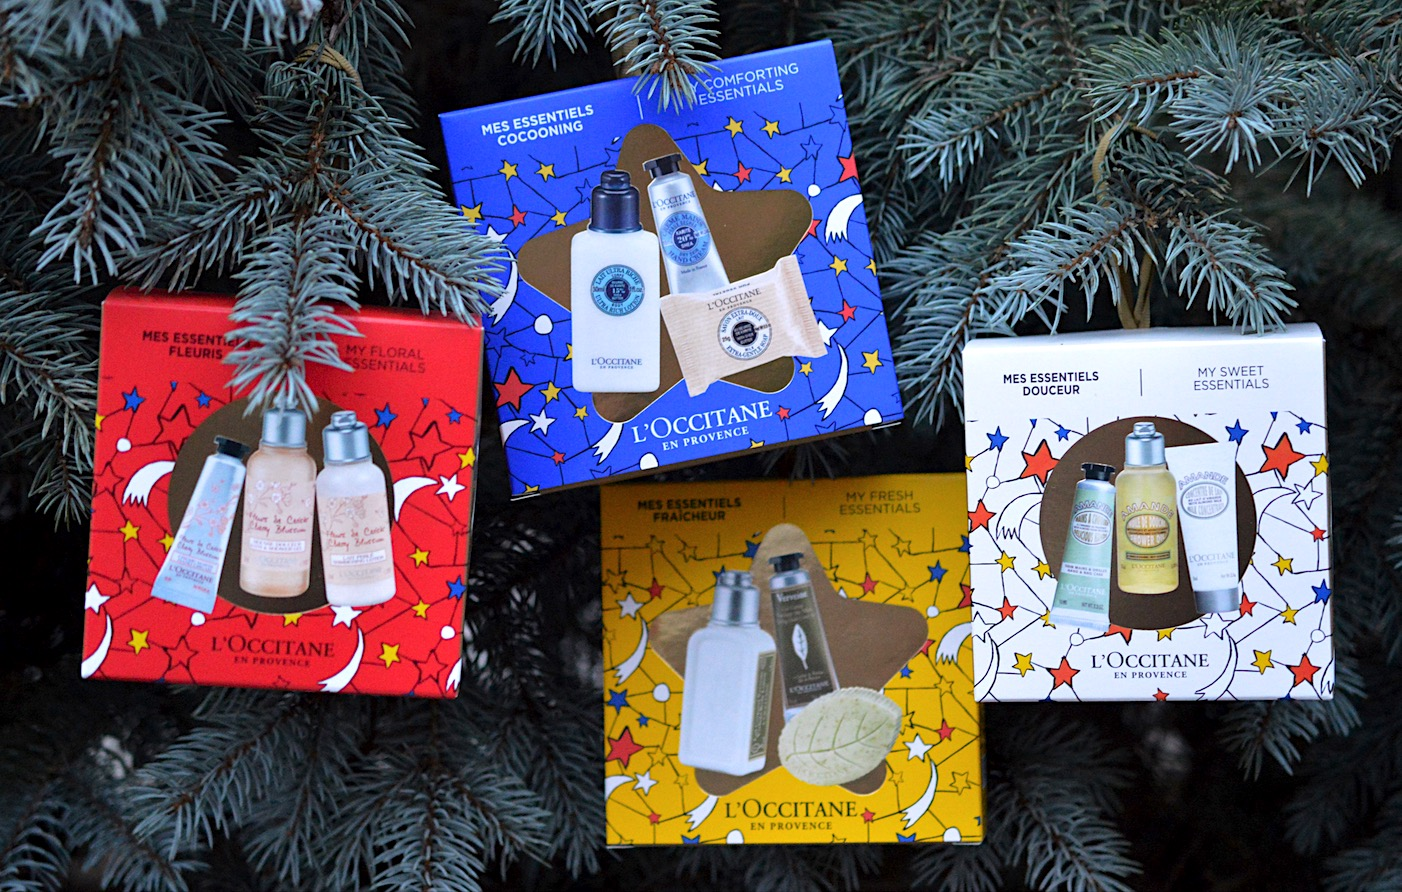 L'Occitane Christmas Ornaments